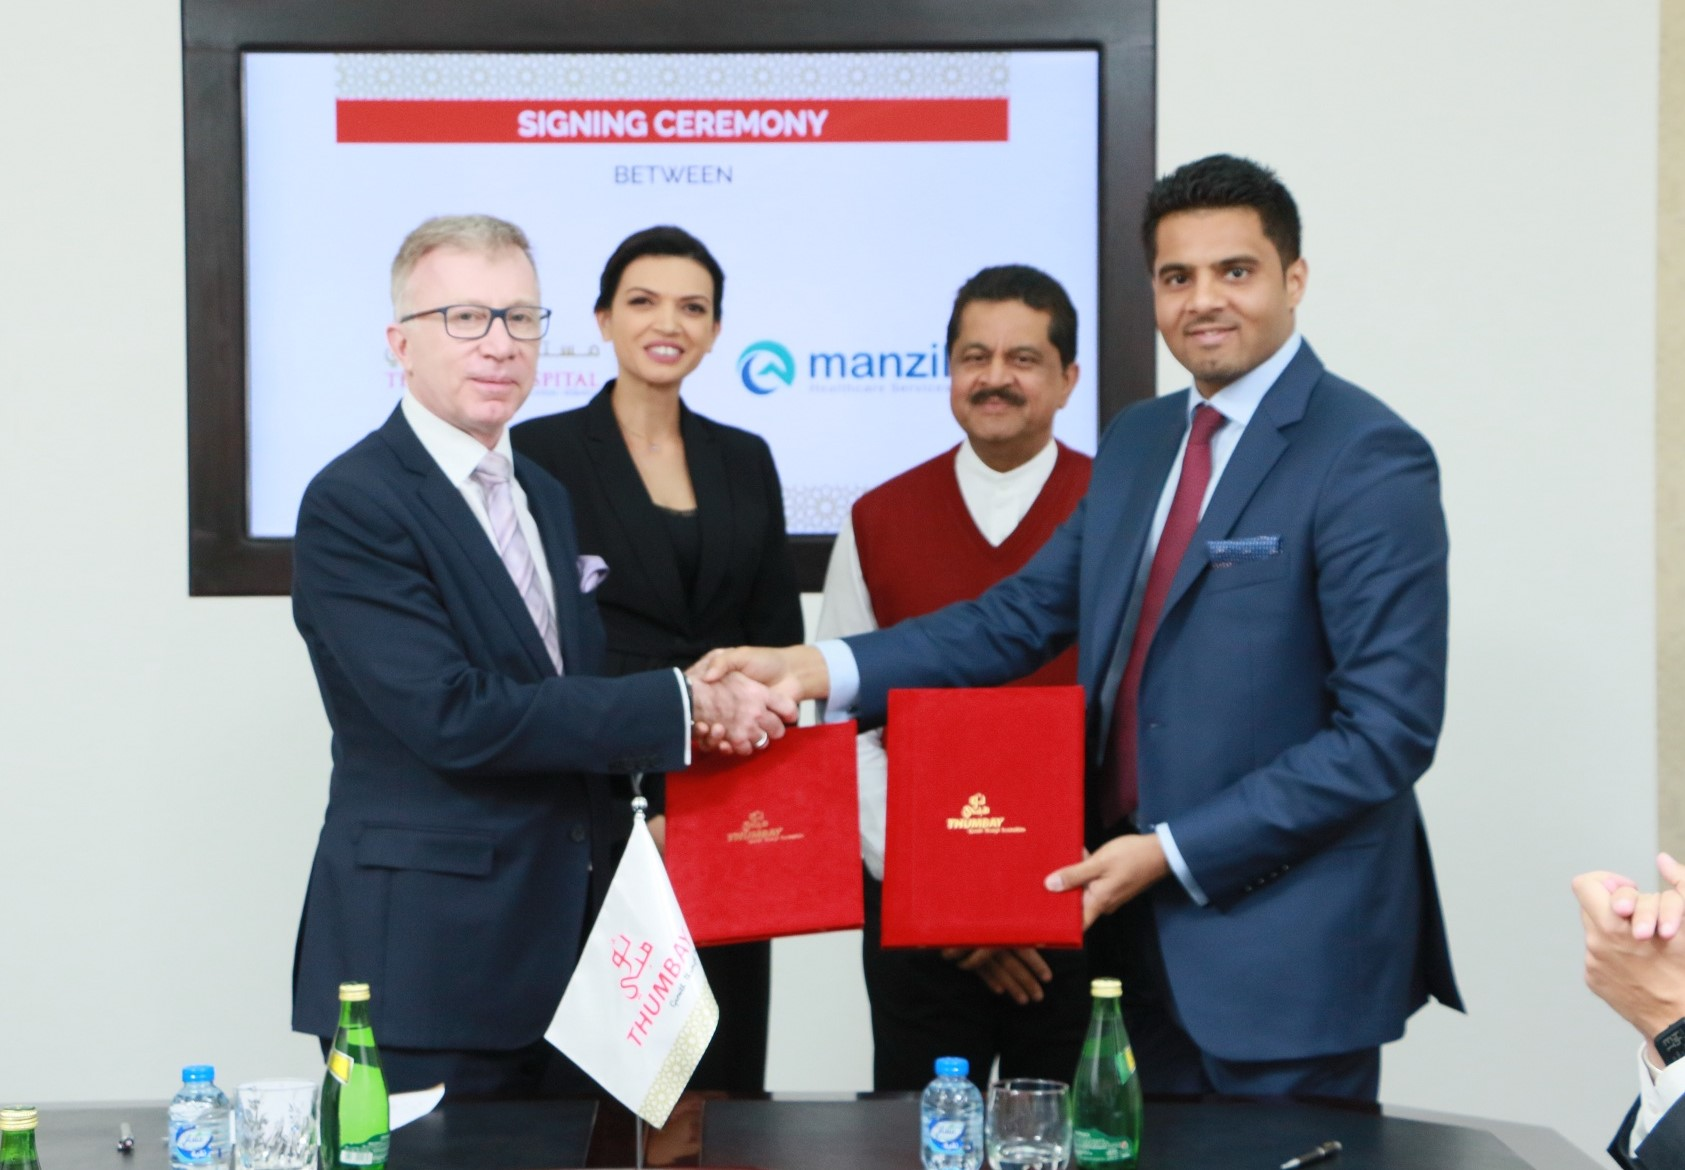 Manzil Healthcare Services signs an agreement with Thumbay Hospital Group